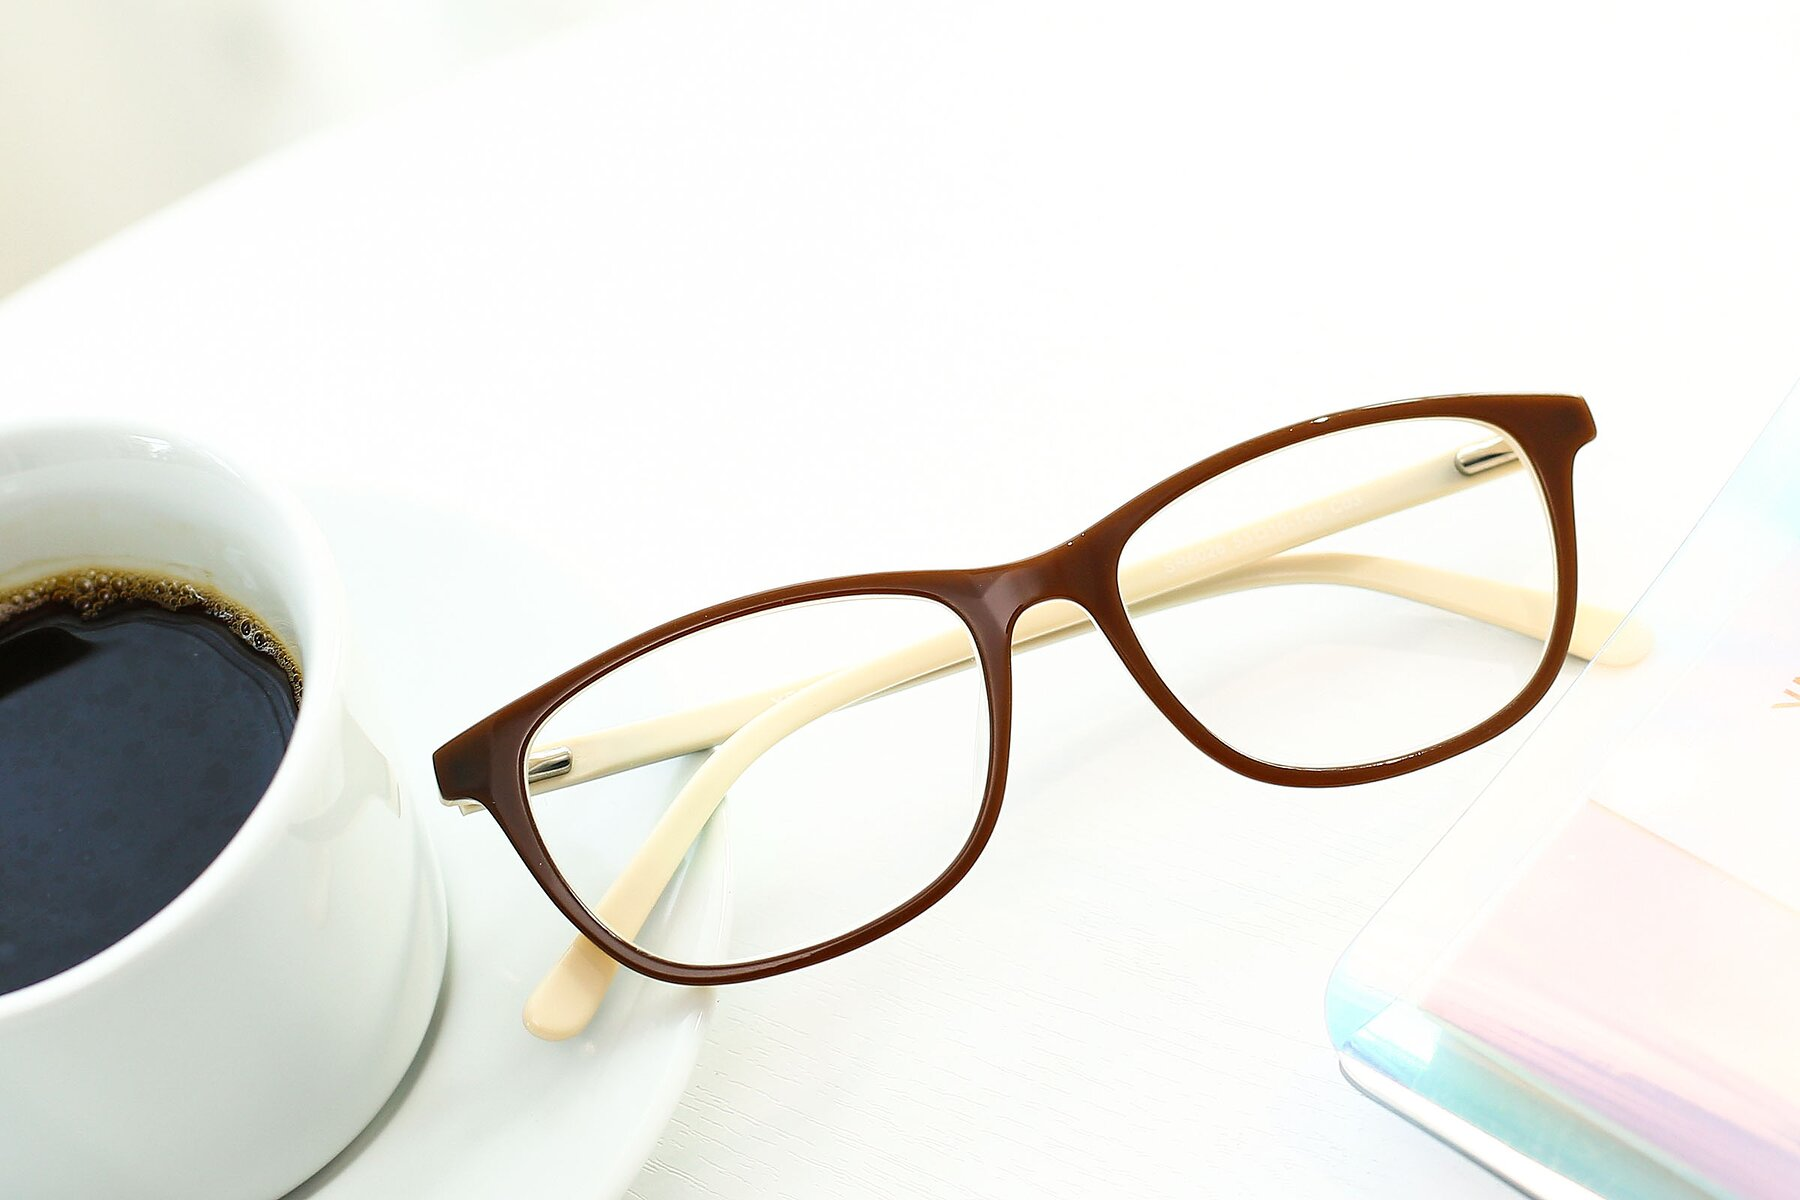 Lifestyle photography #1 of SR6026 in Coffee with Clear Eyeglass Lenses